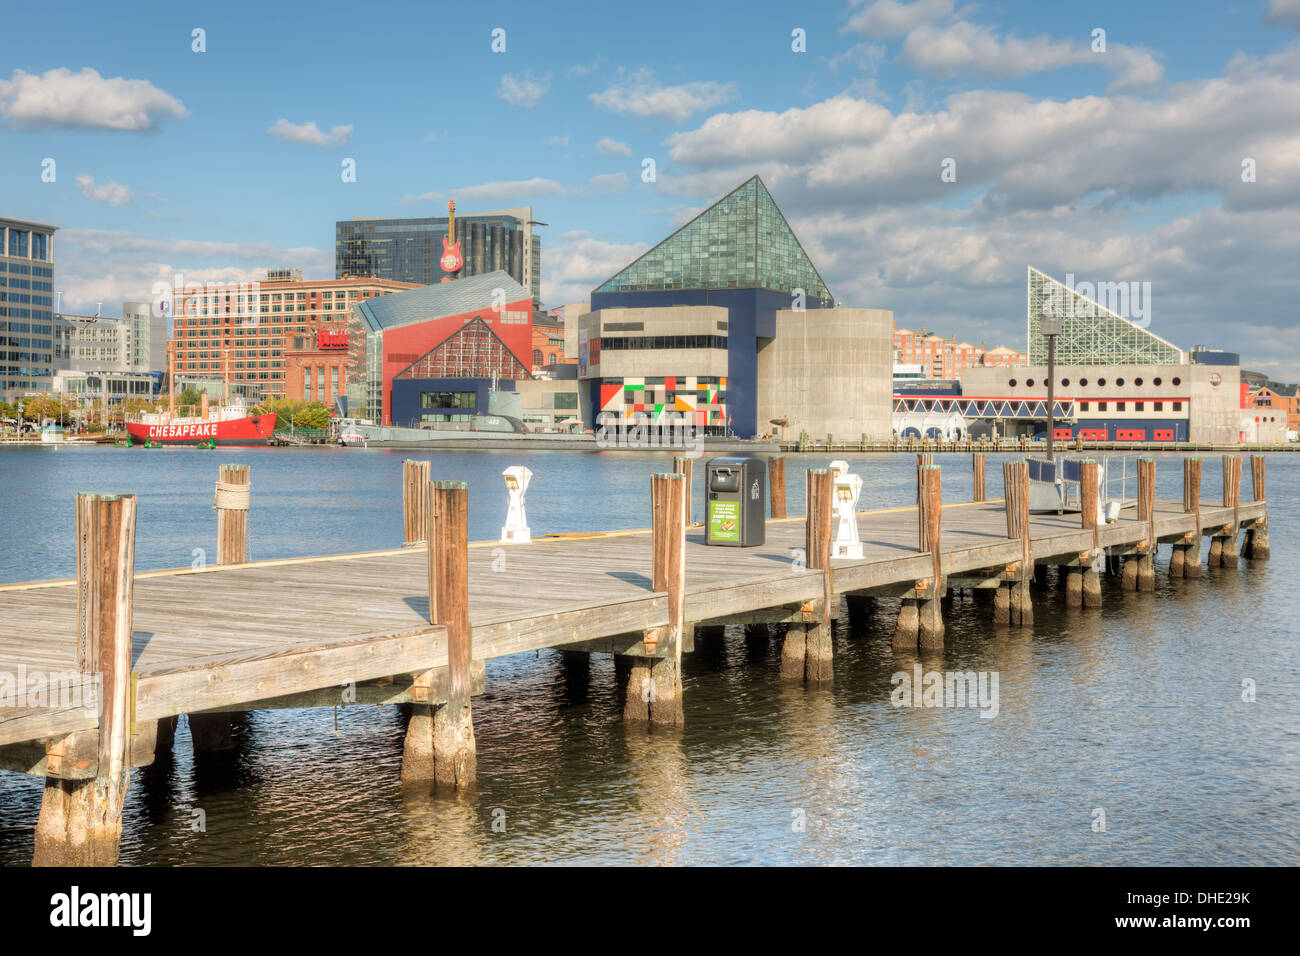 A view of the National Aquarium, Baltimore under a partly cloudy sky in Baltimore, Maryland. - Stock Image